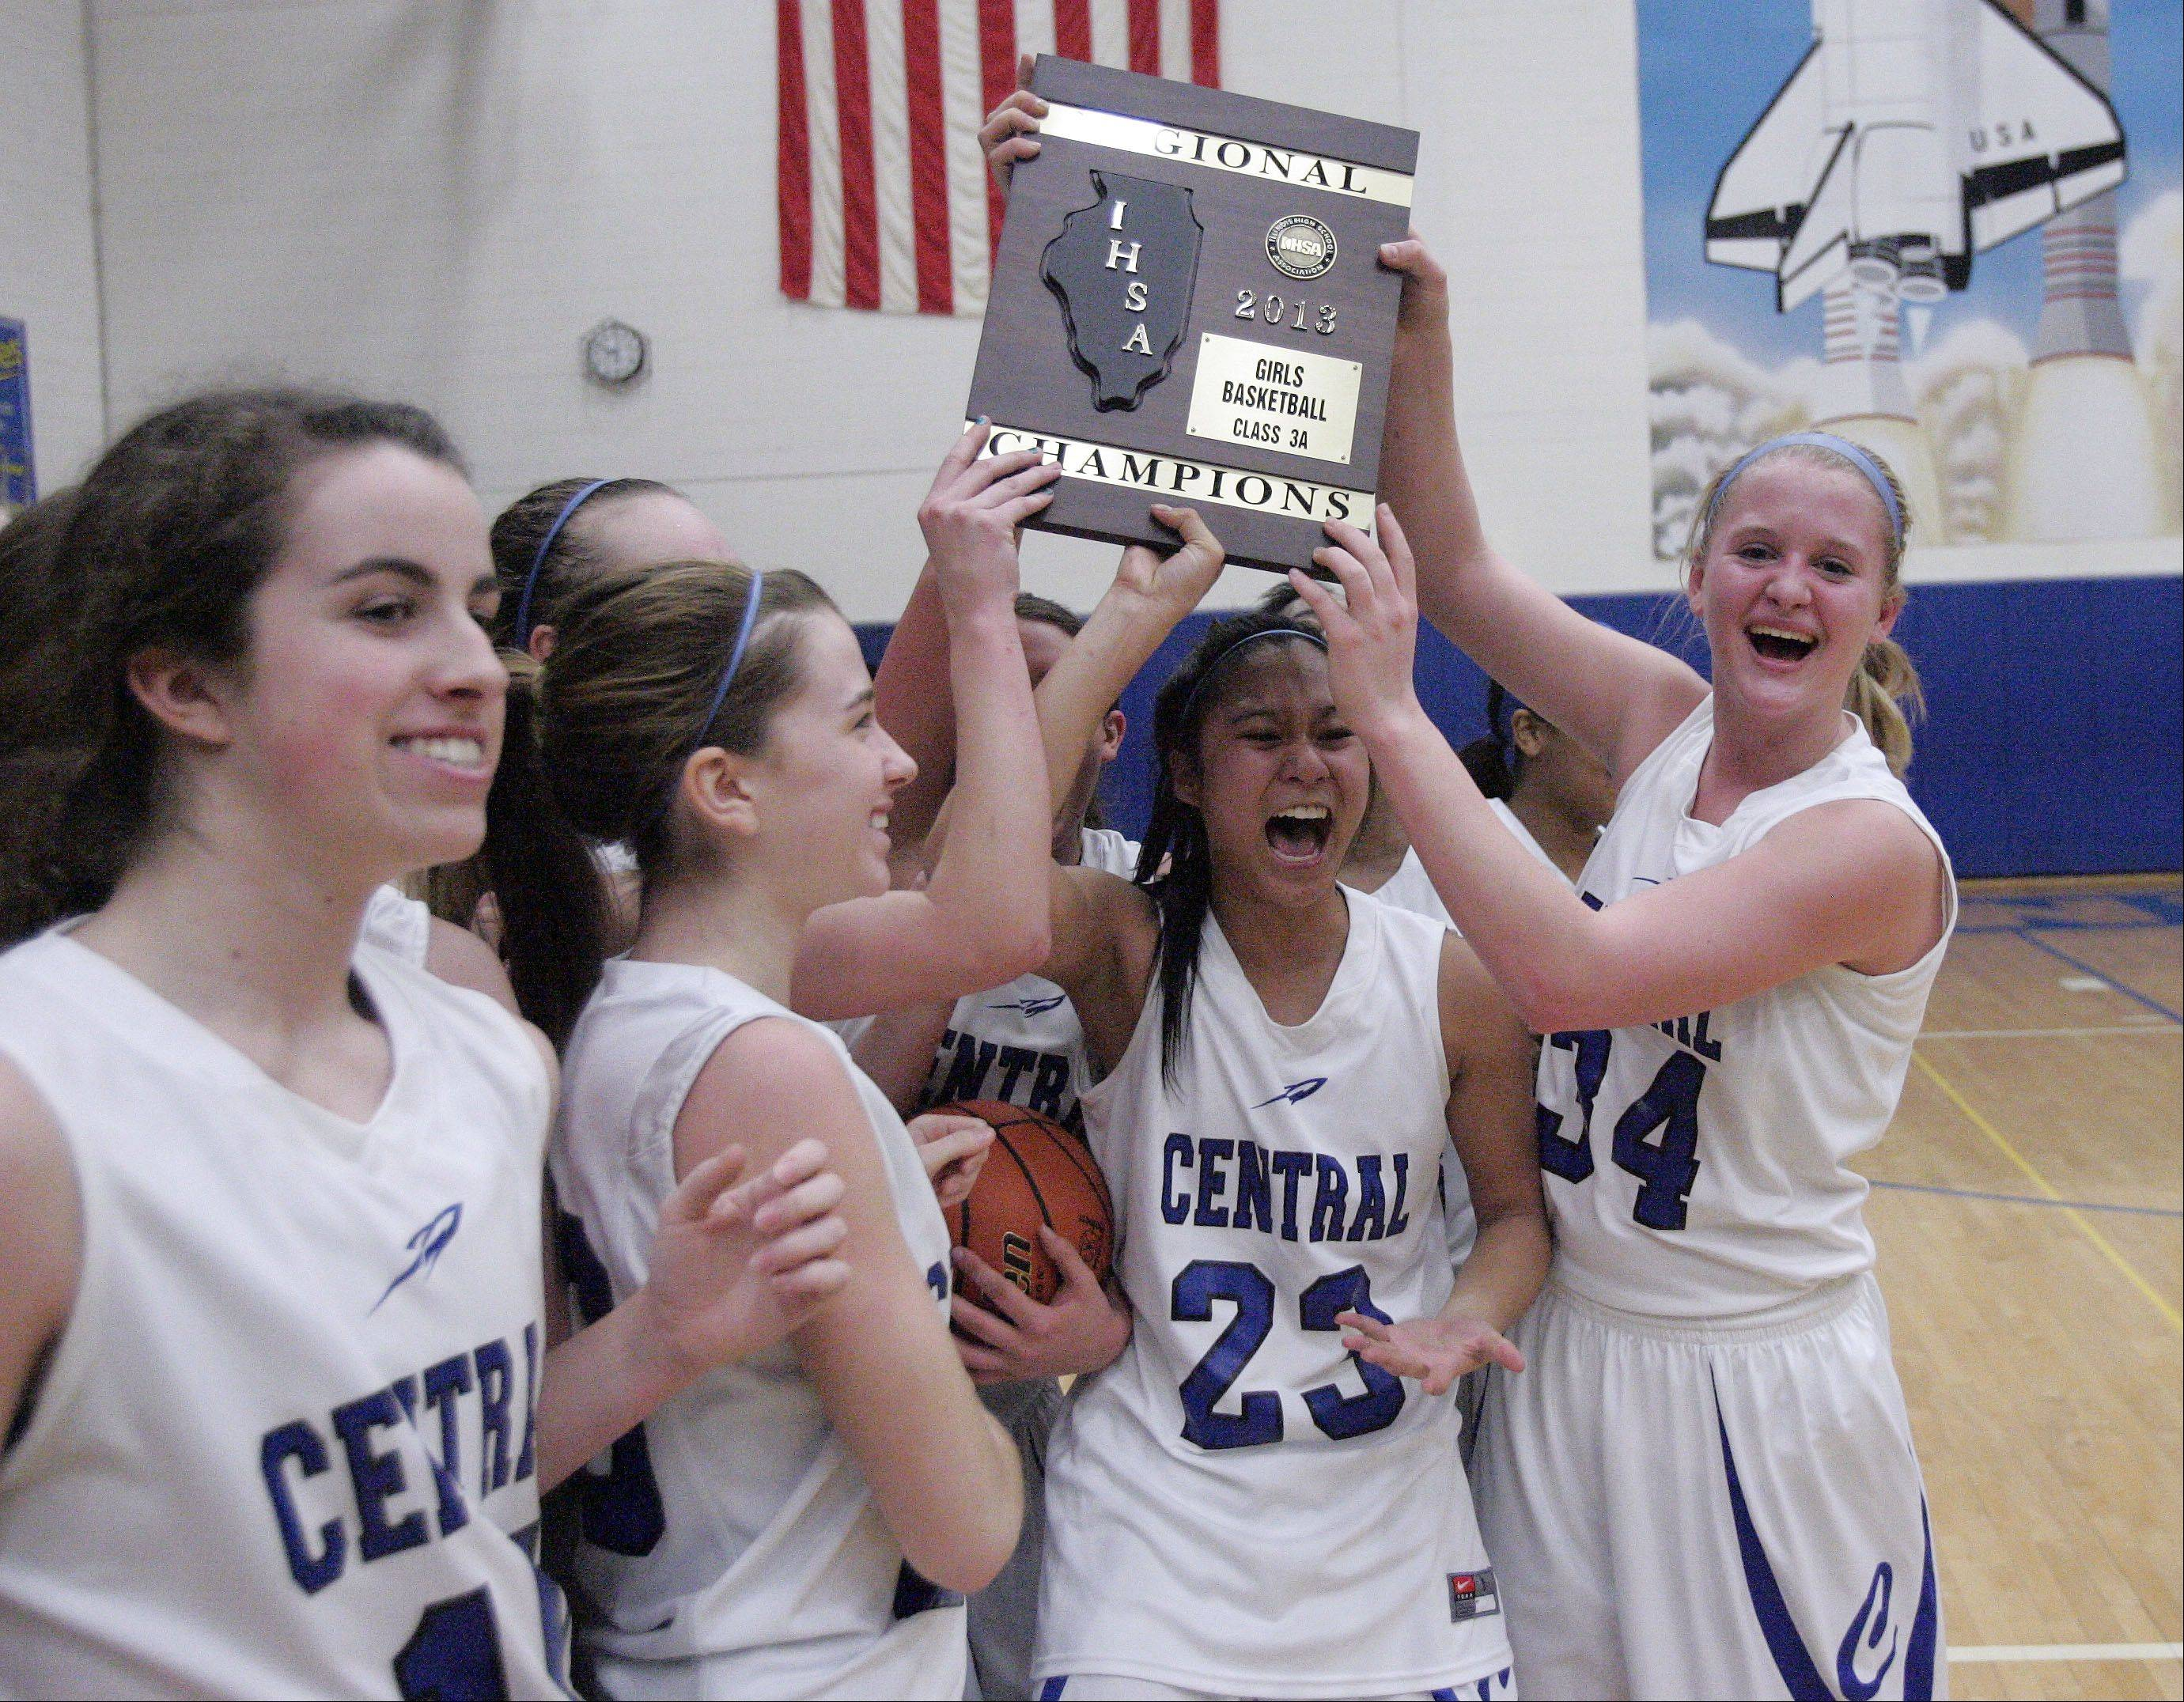 The team holds up the winning plaque after Burlington Central beat Plano 38-34 for the IHSA Class 3A regional girls basketball championship Friday February 15, 2013 at Burlington.